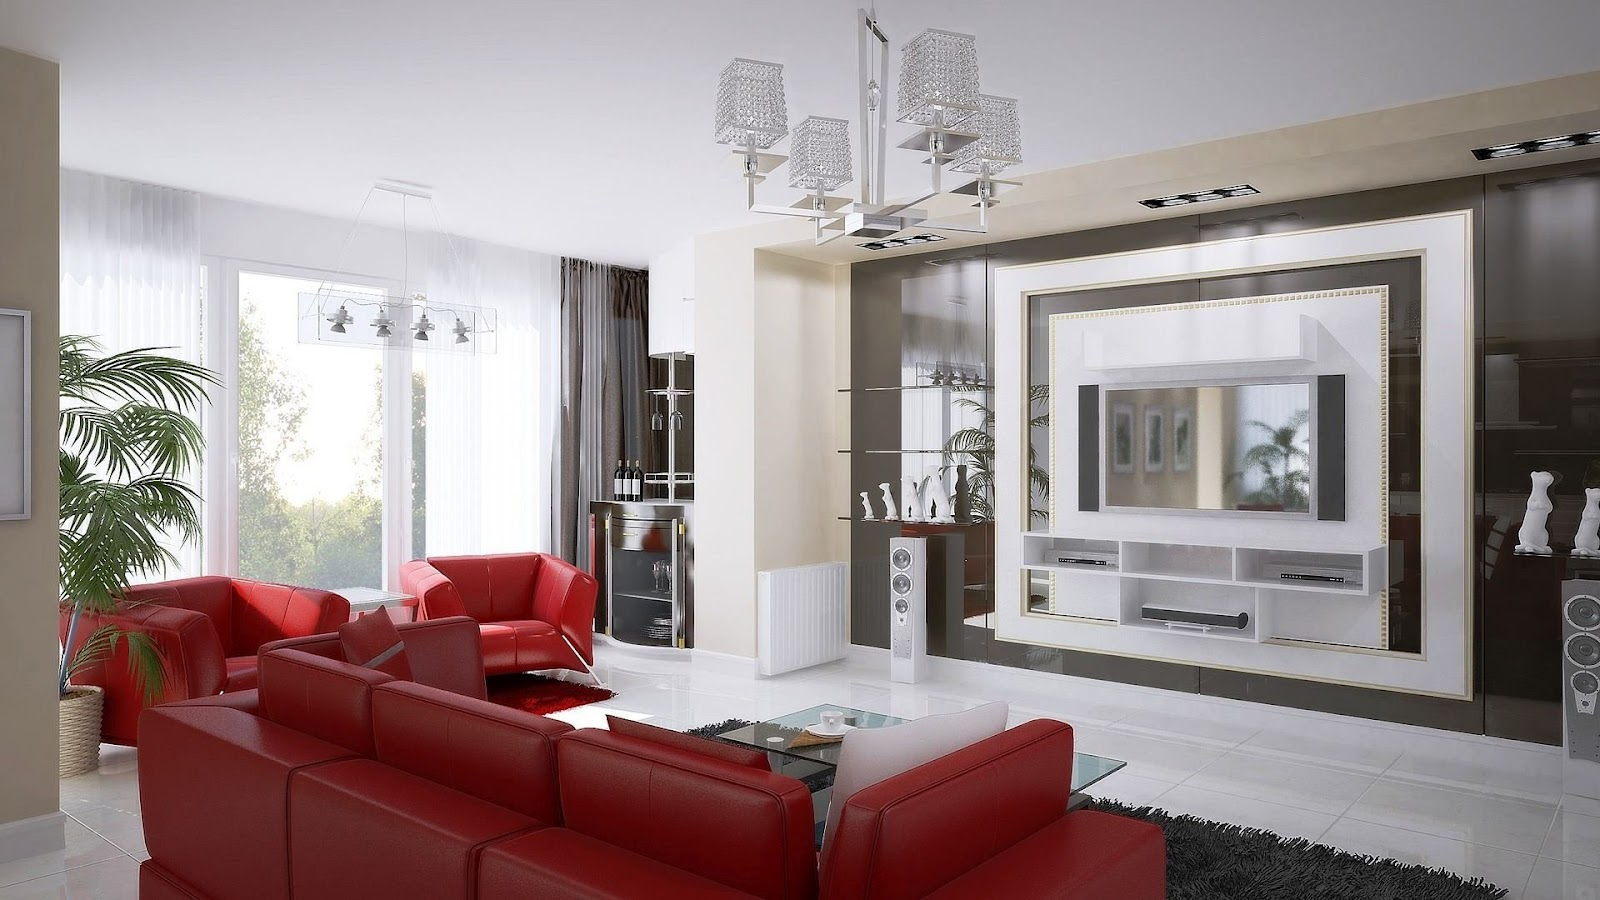 Living Room Hd Pic New Posts Wallpapers